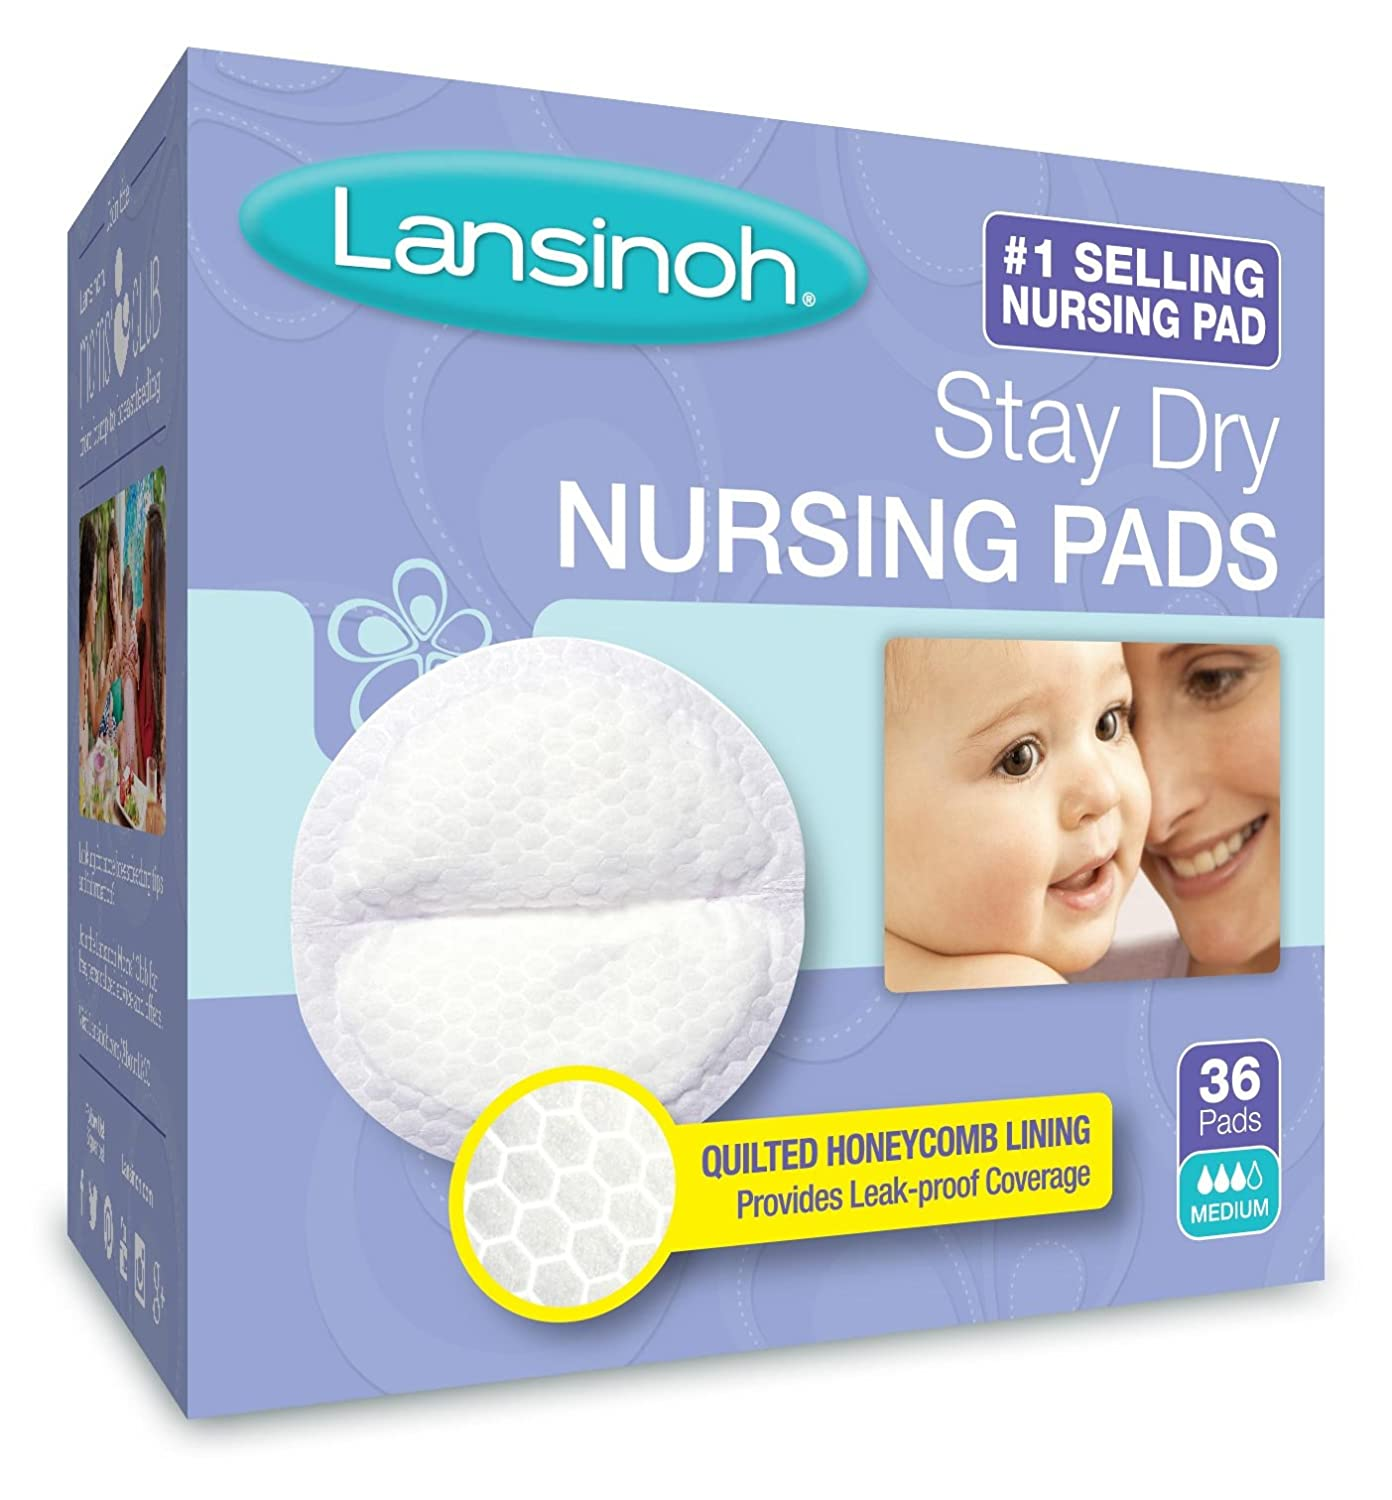 Lansinoh Nursing Pads, Pack of 36 Stay Dry Disposable Breast Pads 20236